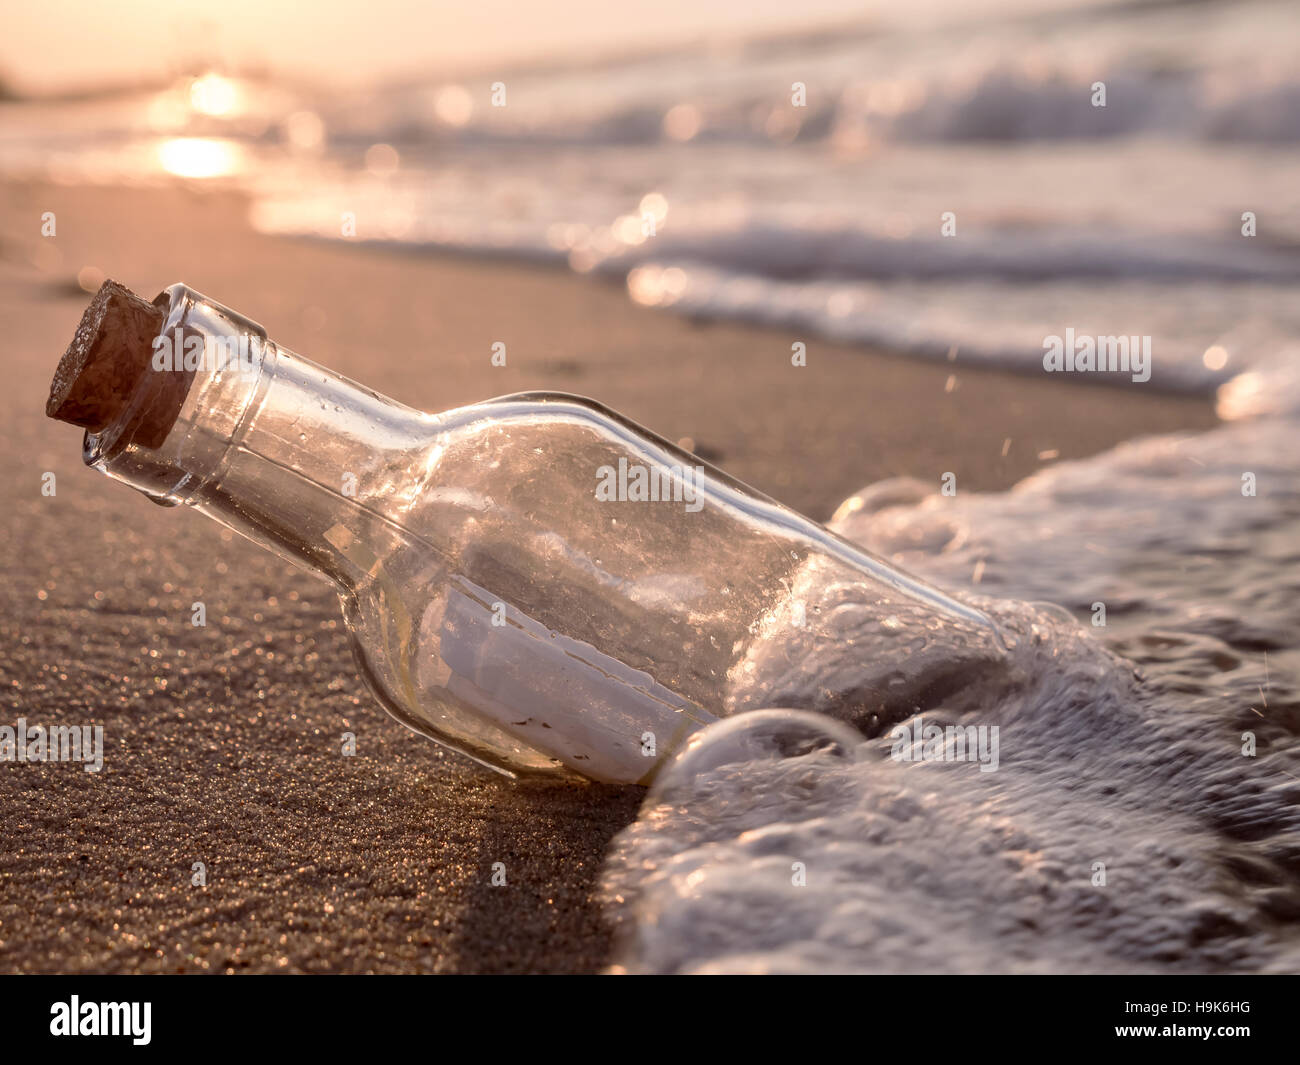 Message in the bottle washed ashore against the Sun setting down - Stock Image